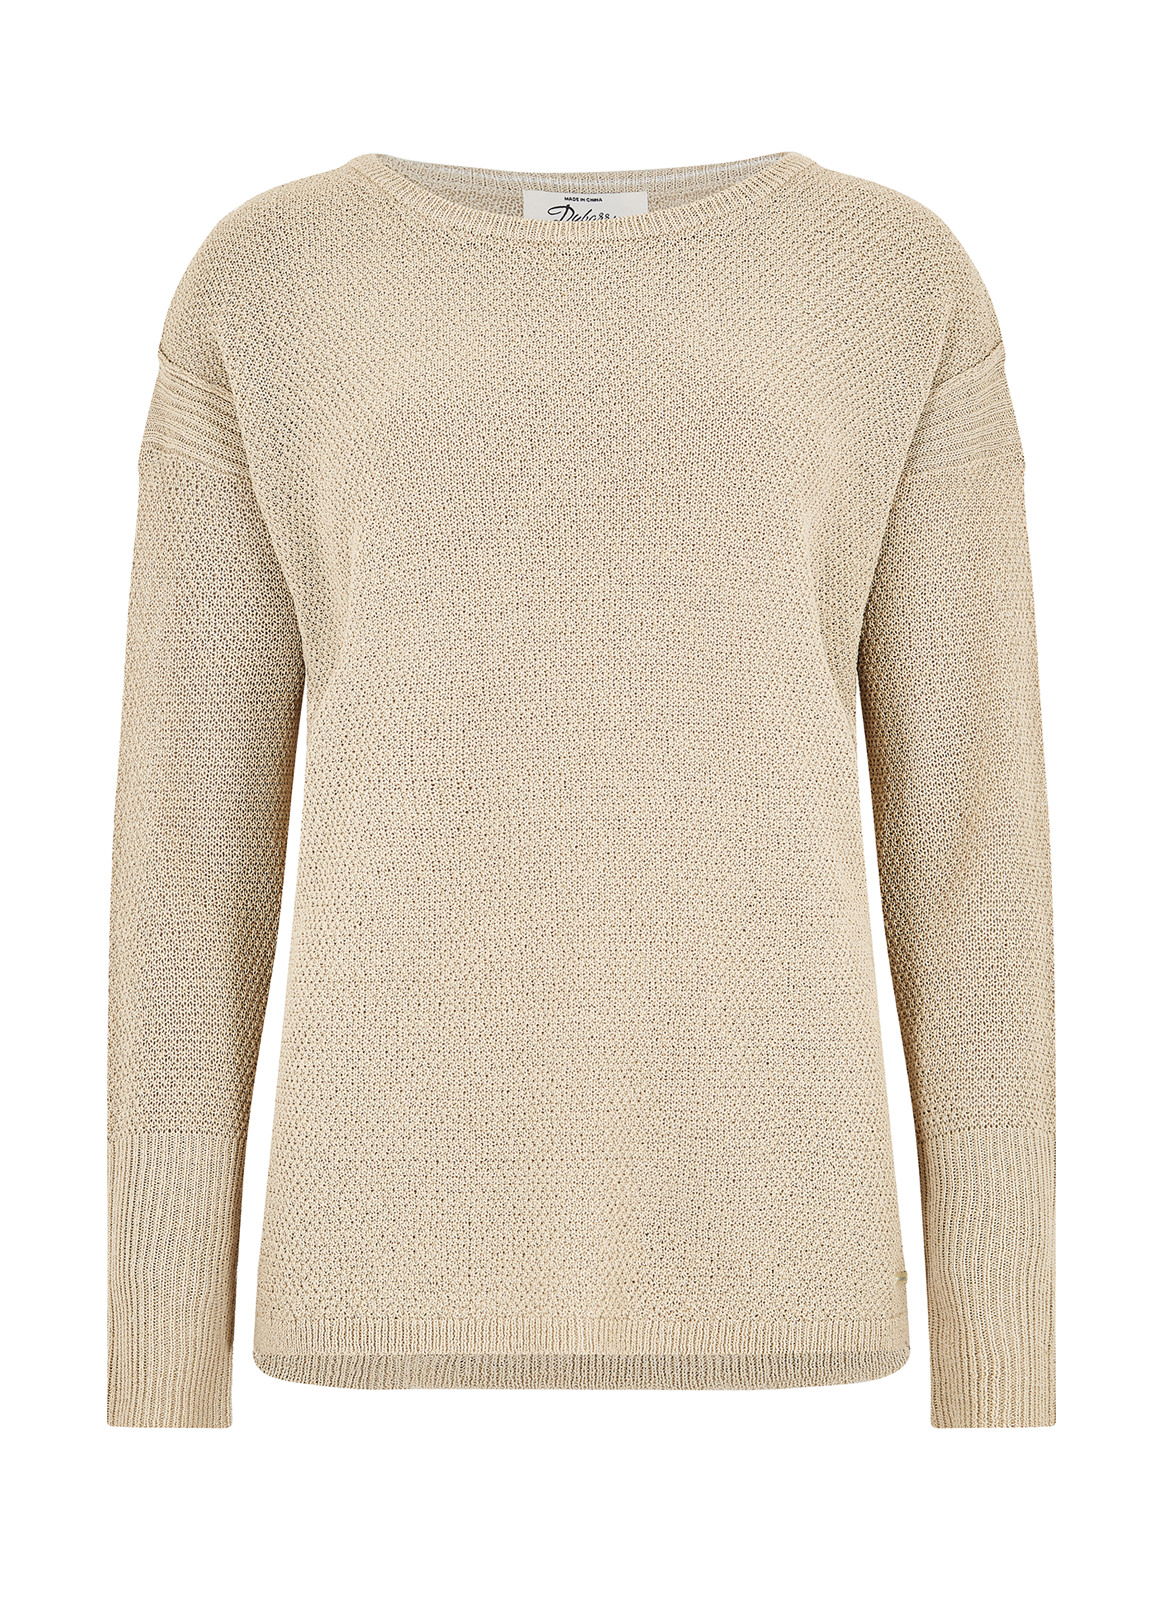 Woodford Knit Top - Tan